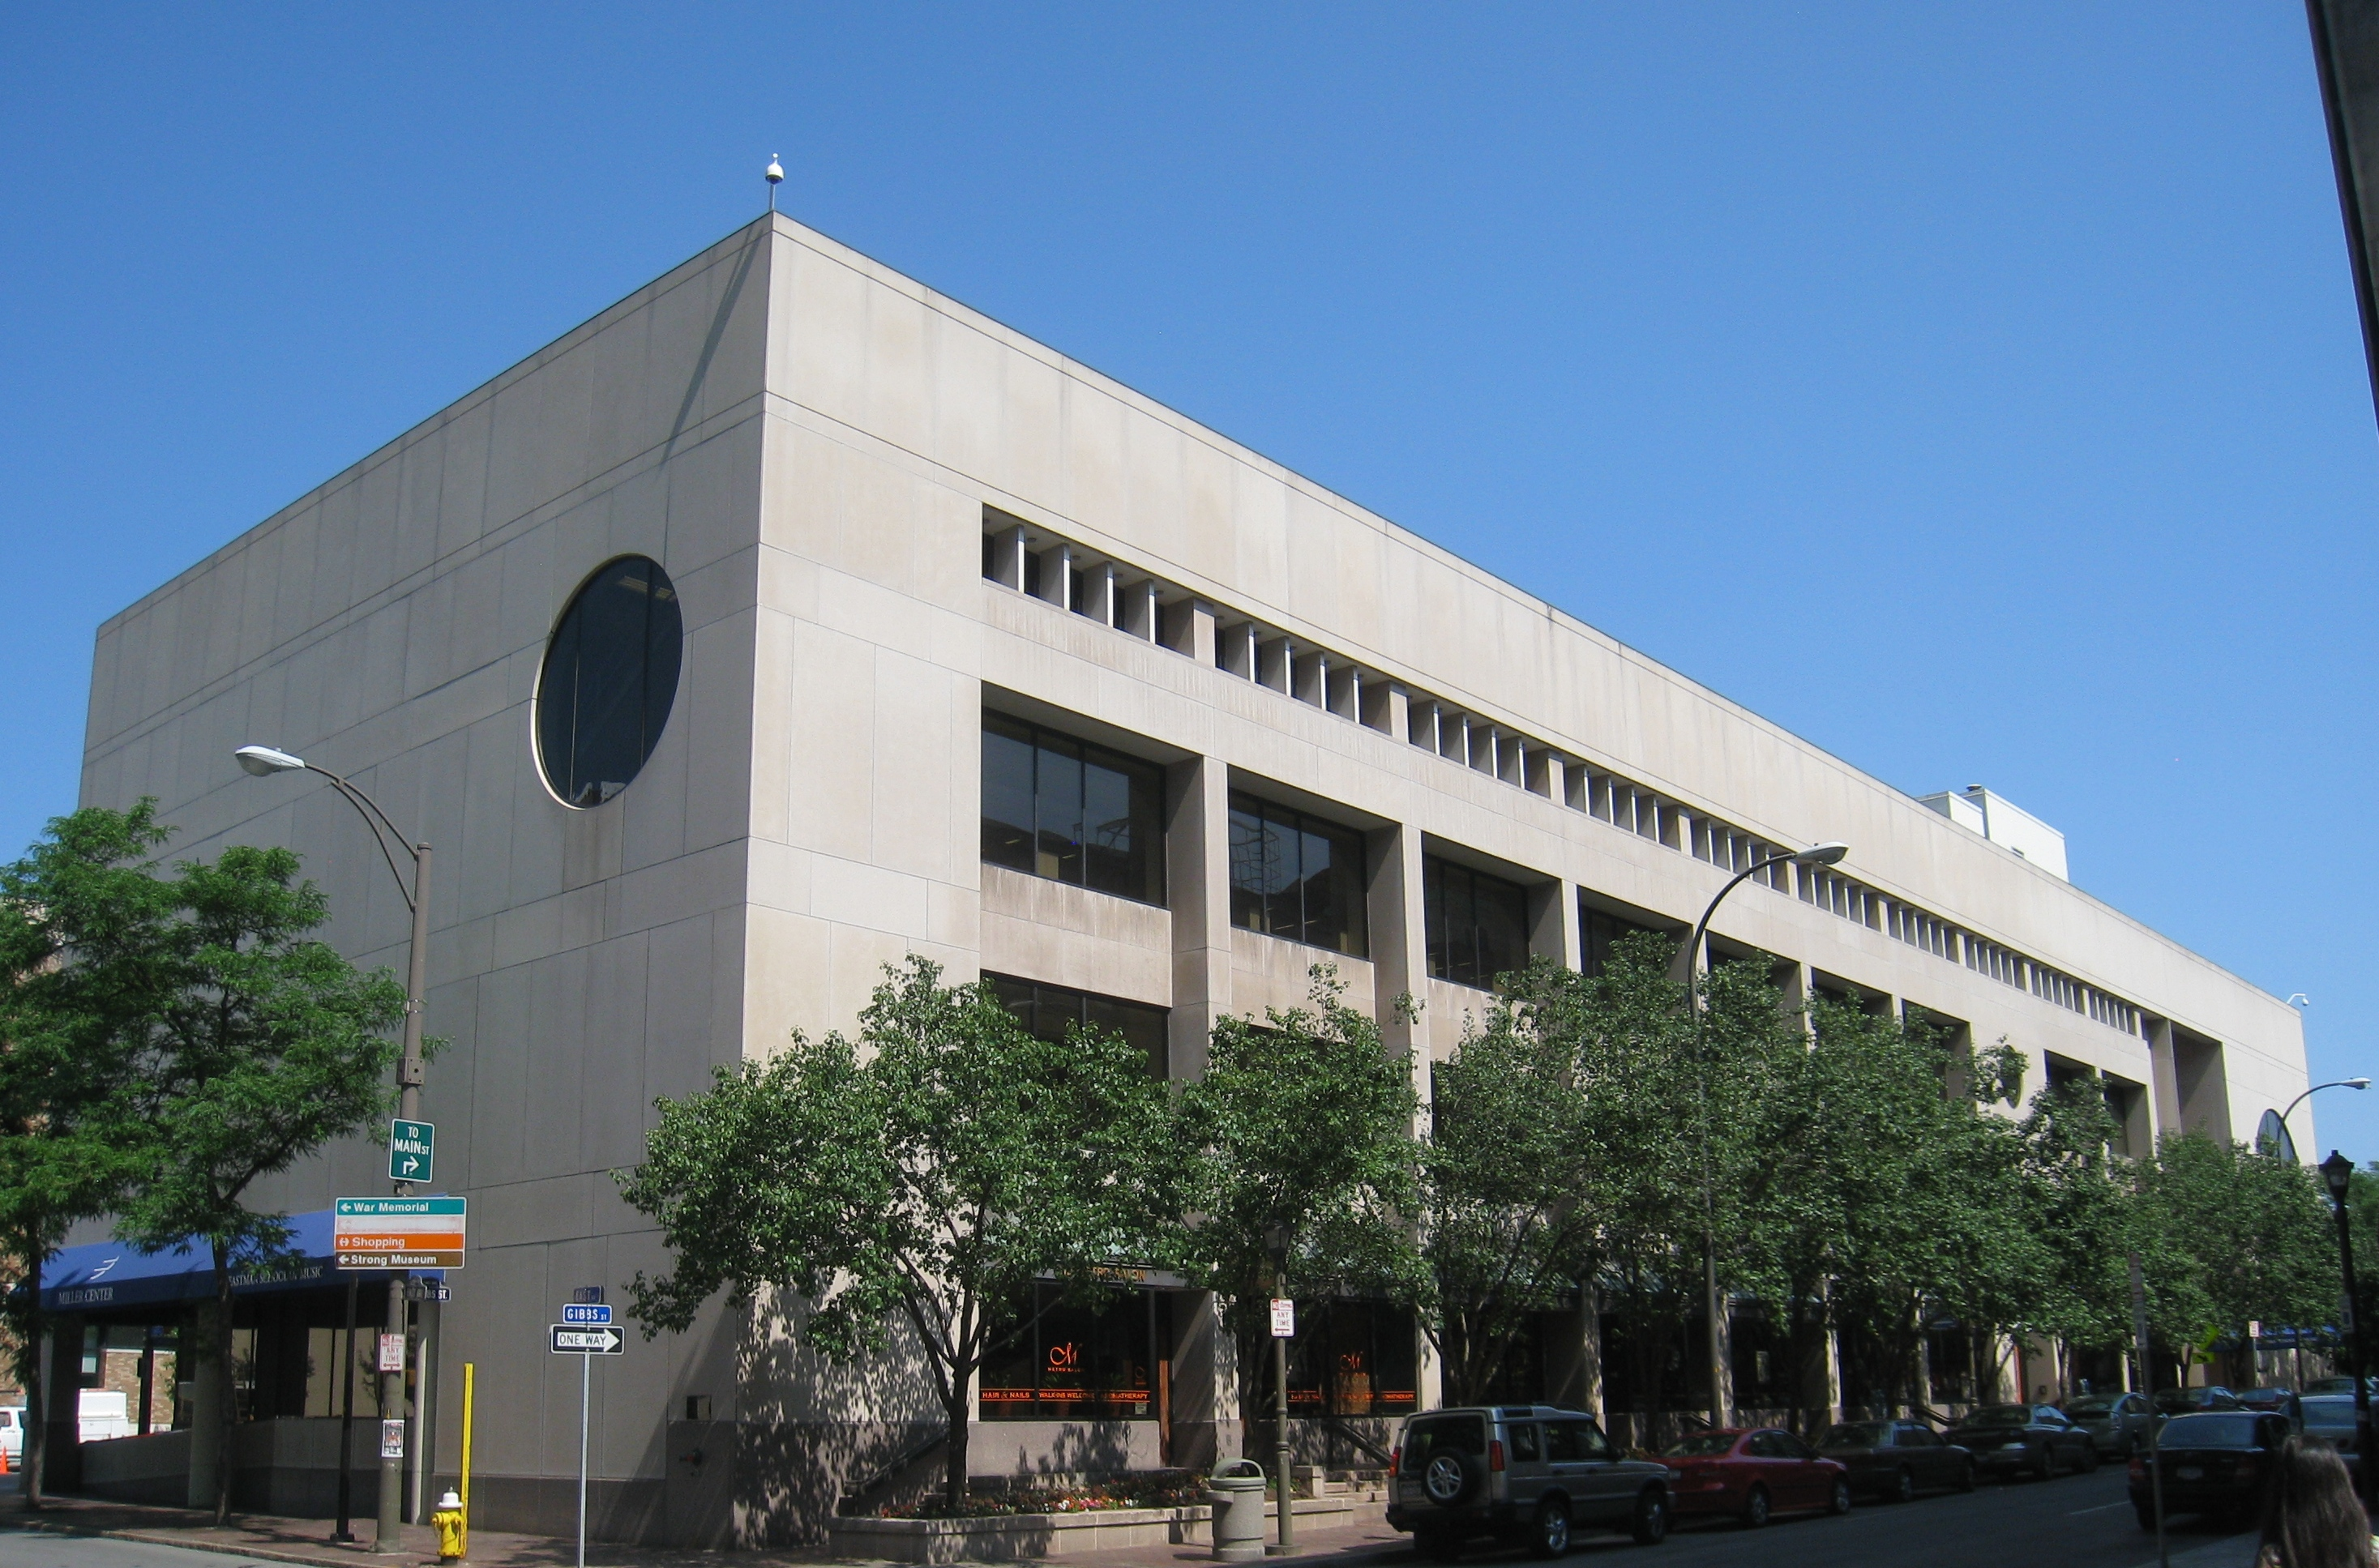 Sibley Music Library - Wikipedia